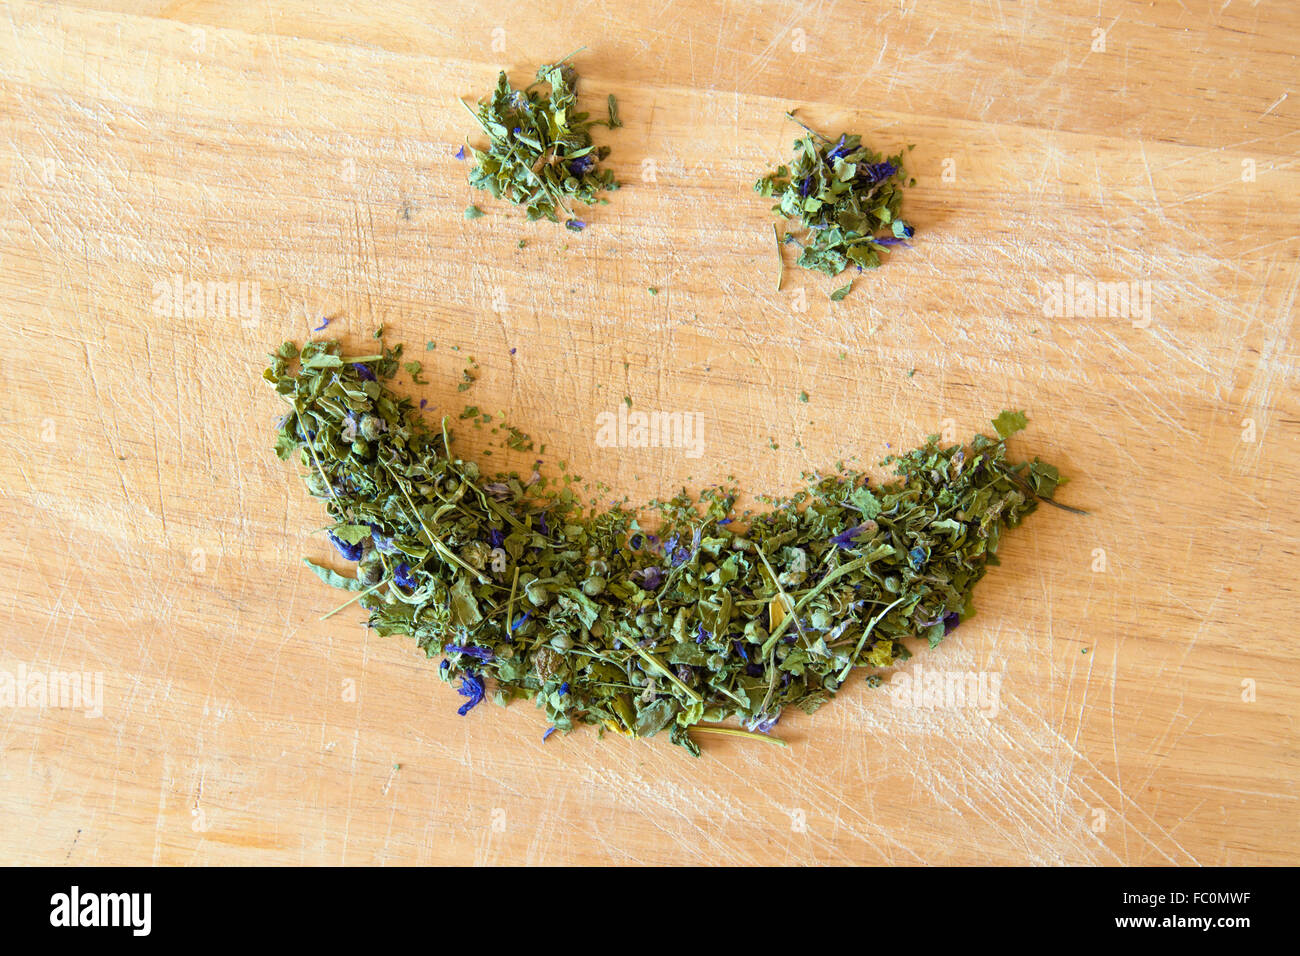 Image result for happy tea dried